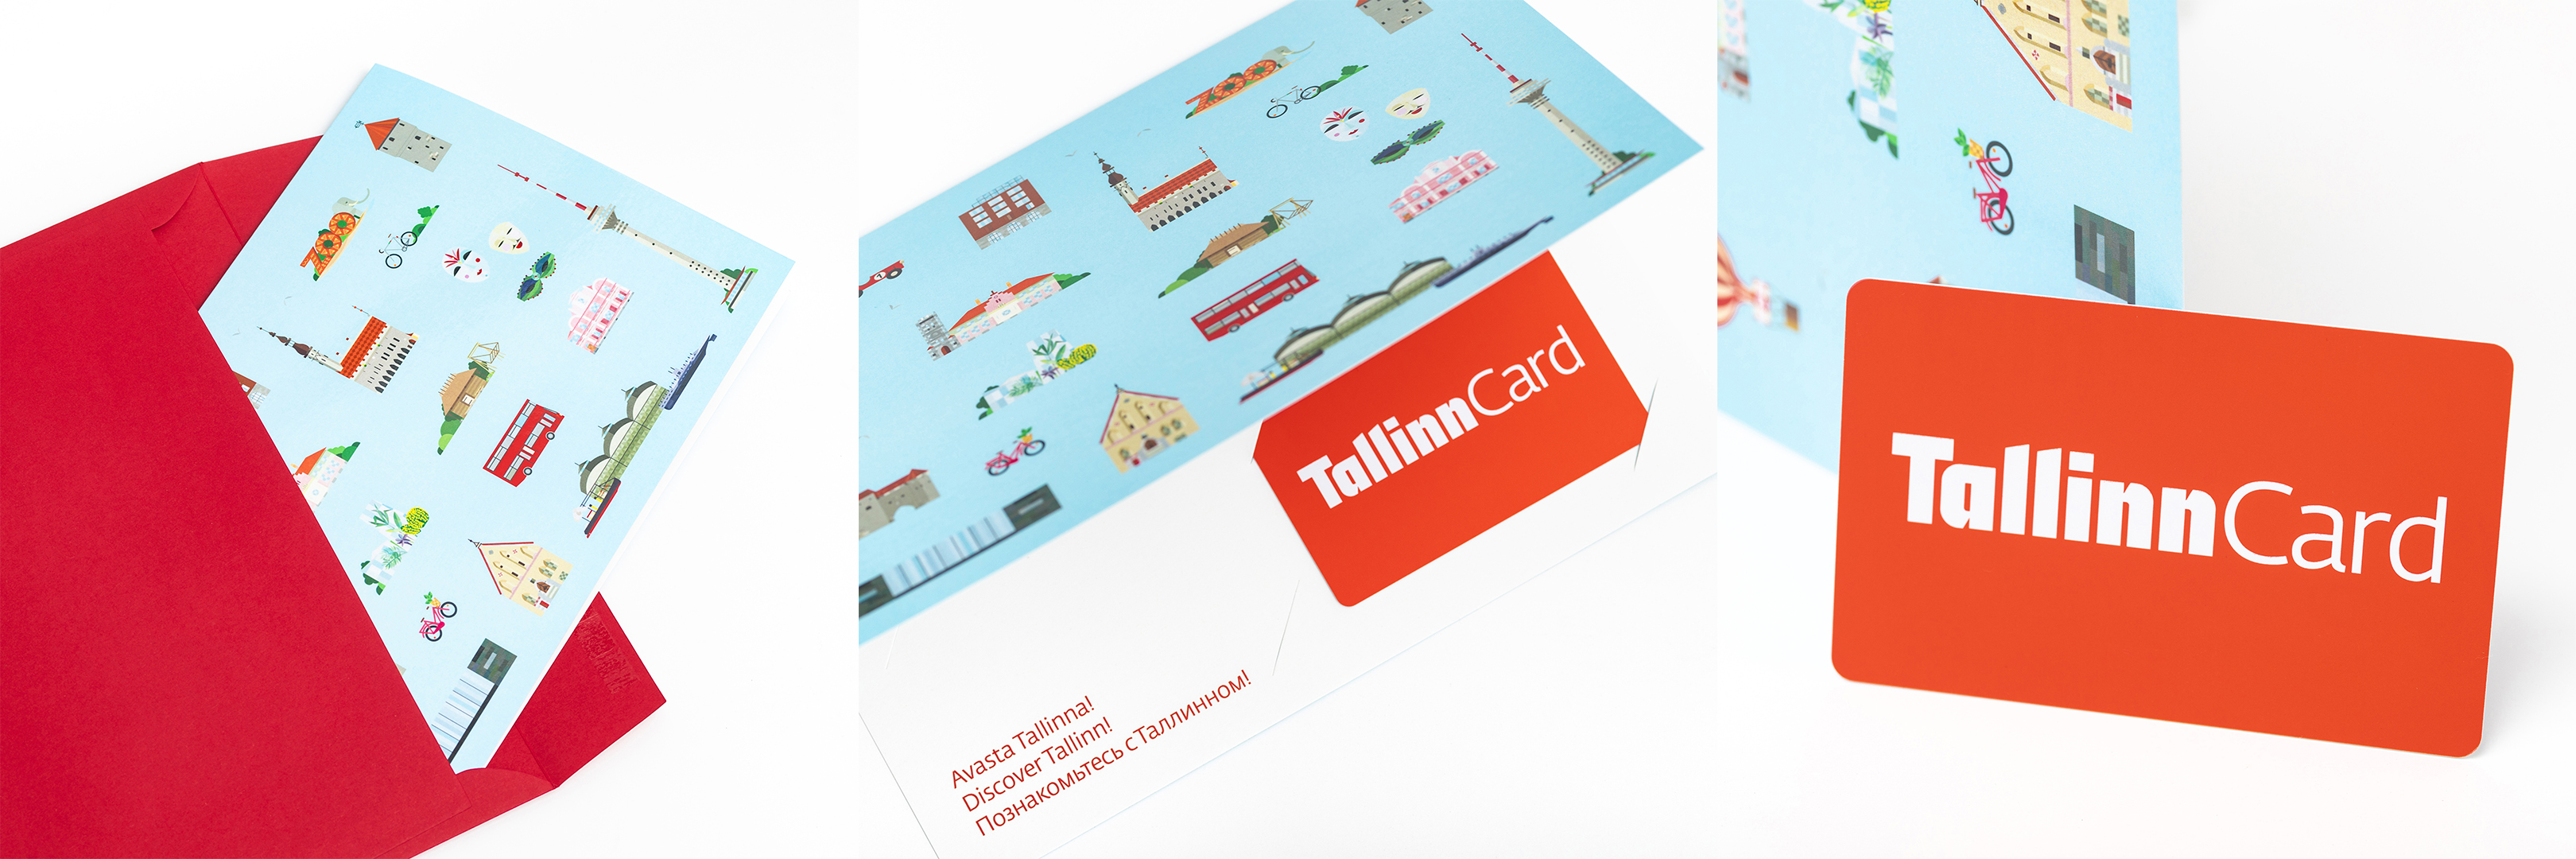 Red plastic Tallinn Card in a gift-envelope. Photo: Tallinn Card